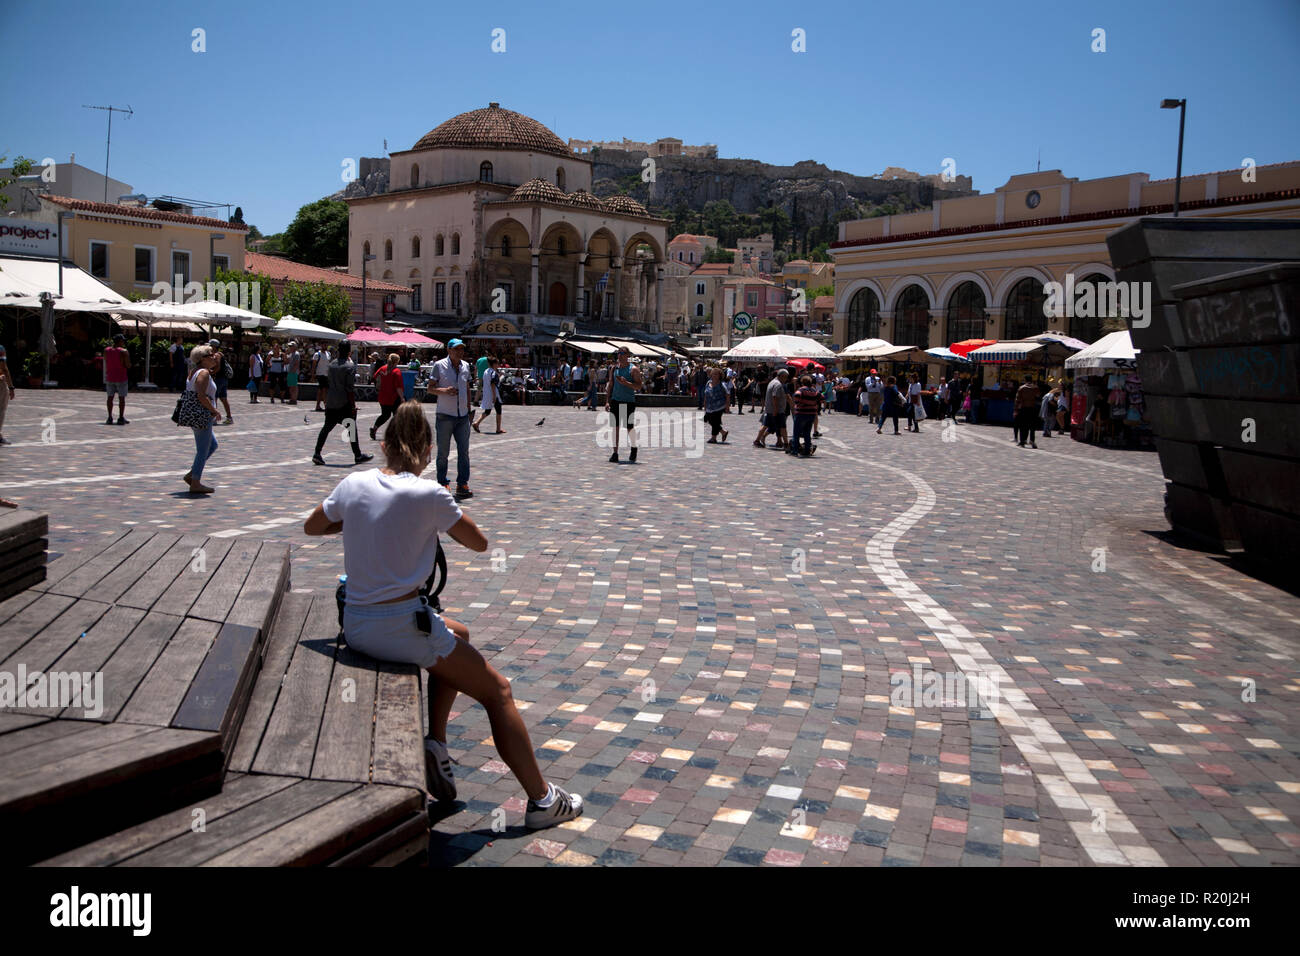 tourists in plateia monastiraki athens greeceStock Photo